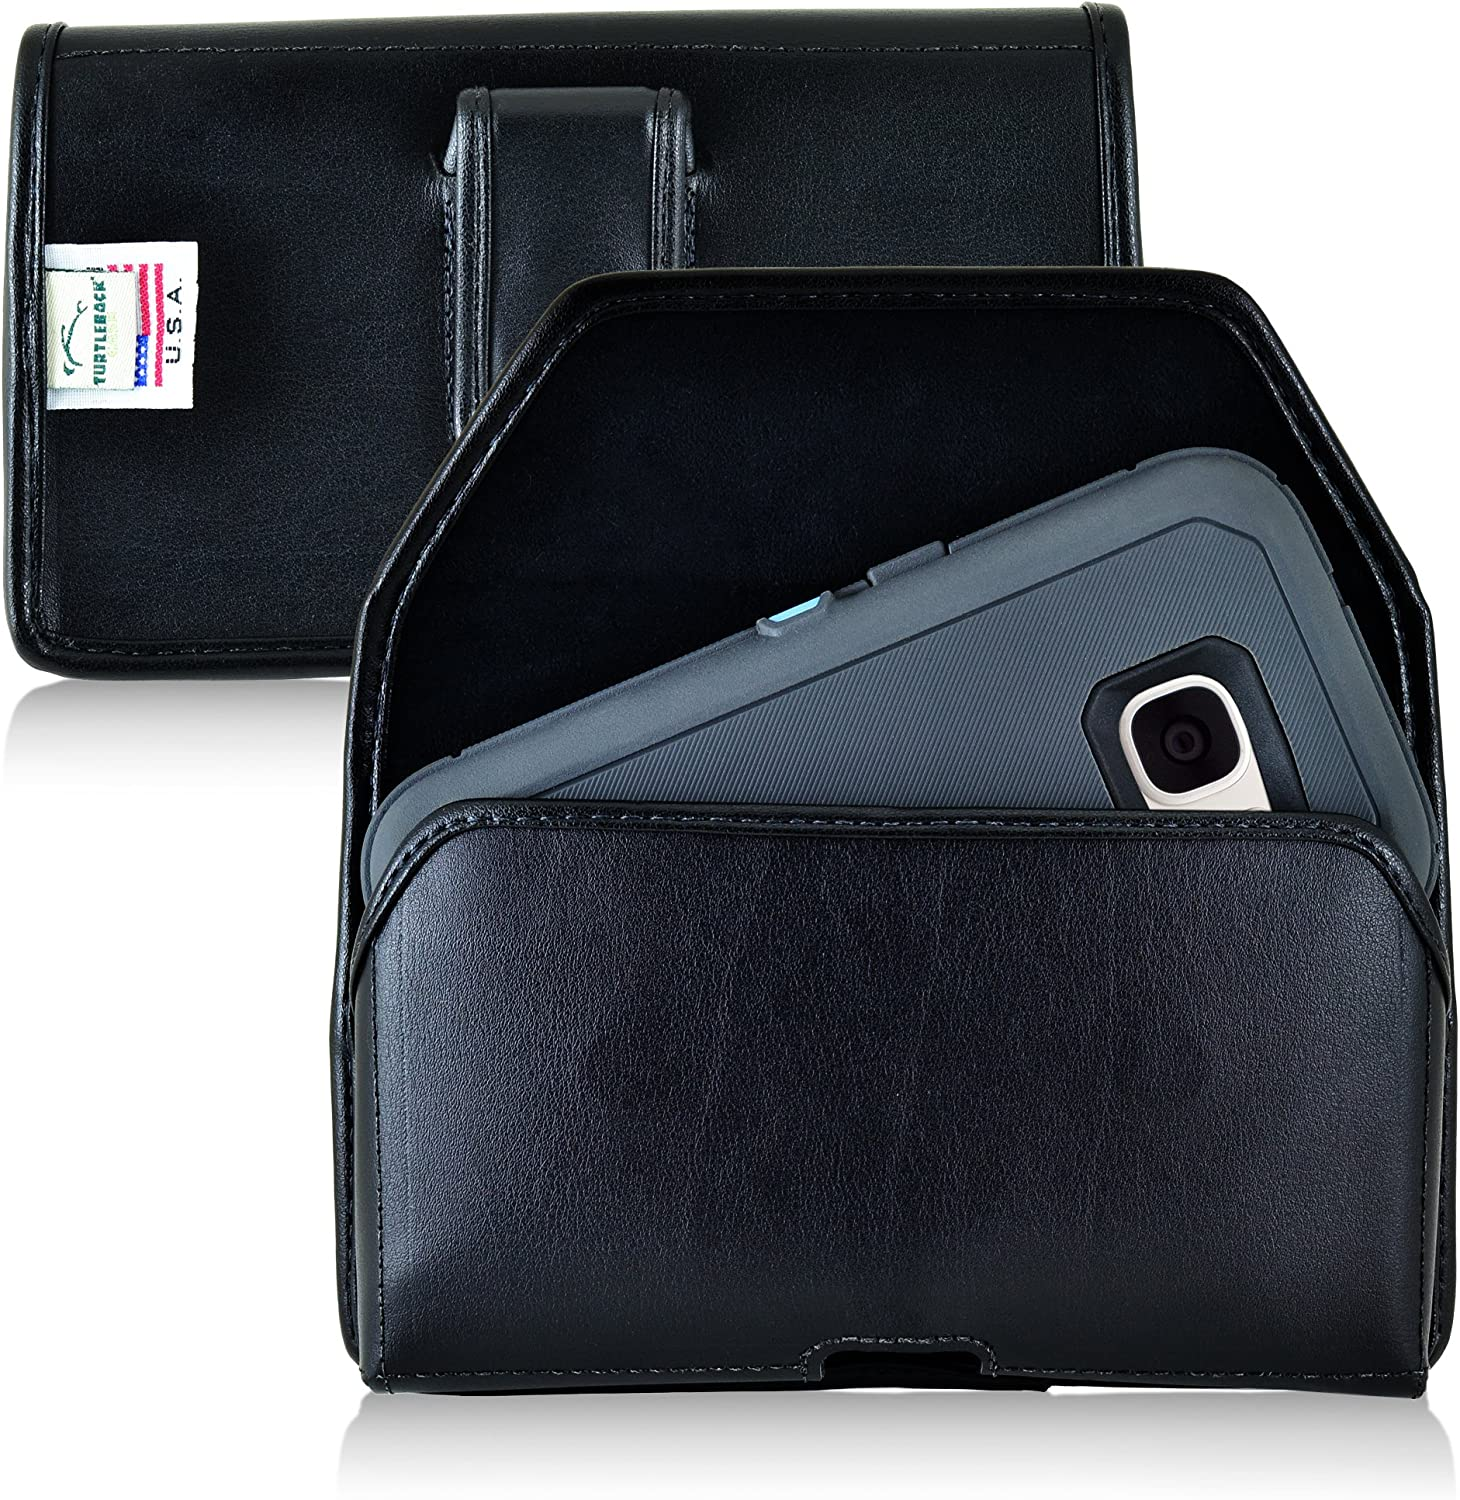 Turtleback Holster Made for Samsung Galaxy S7 with OB Defender or Bulky Cases, Black Belt Case Leather Pouch with Executive Belt Clip Horizontal Made in USA